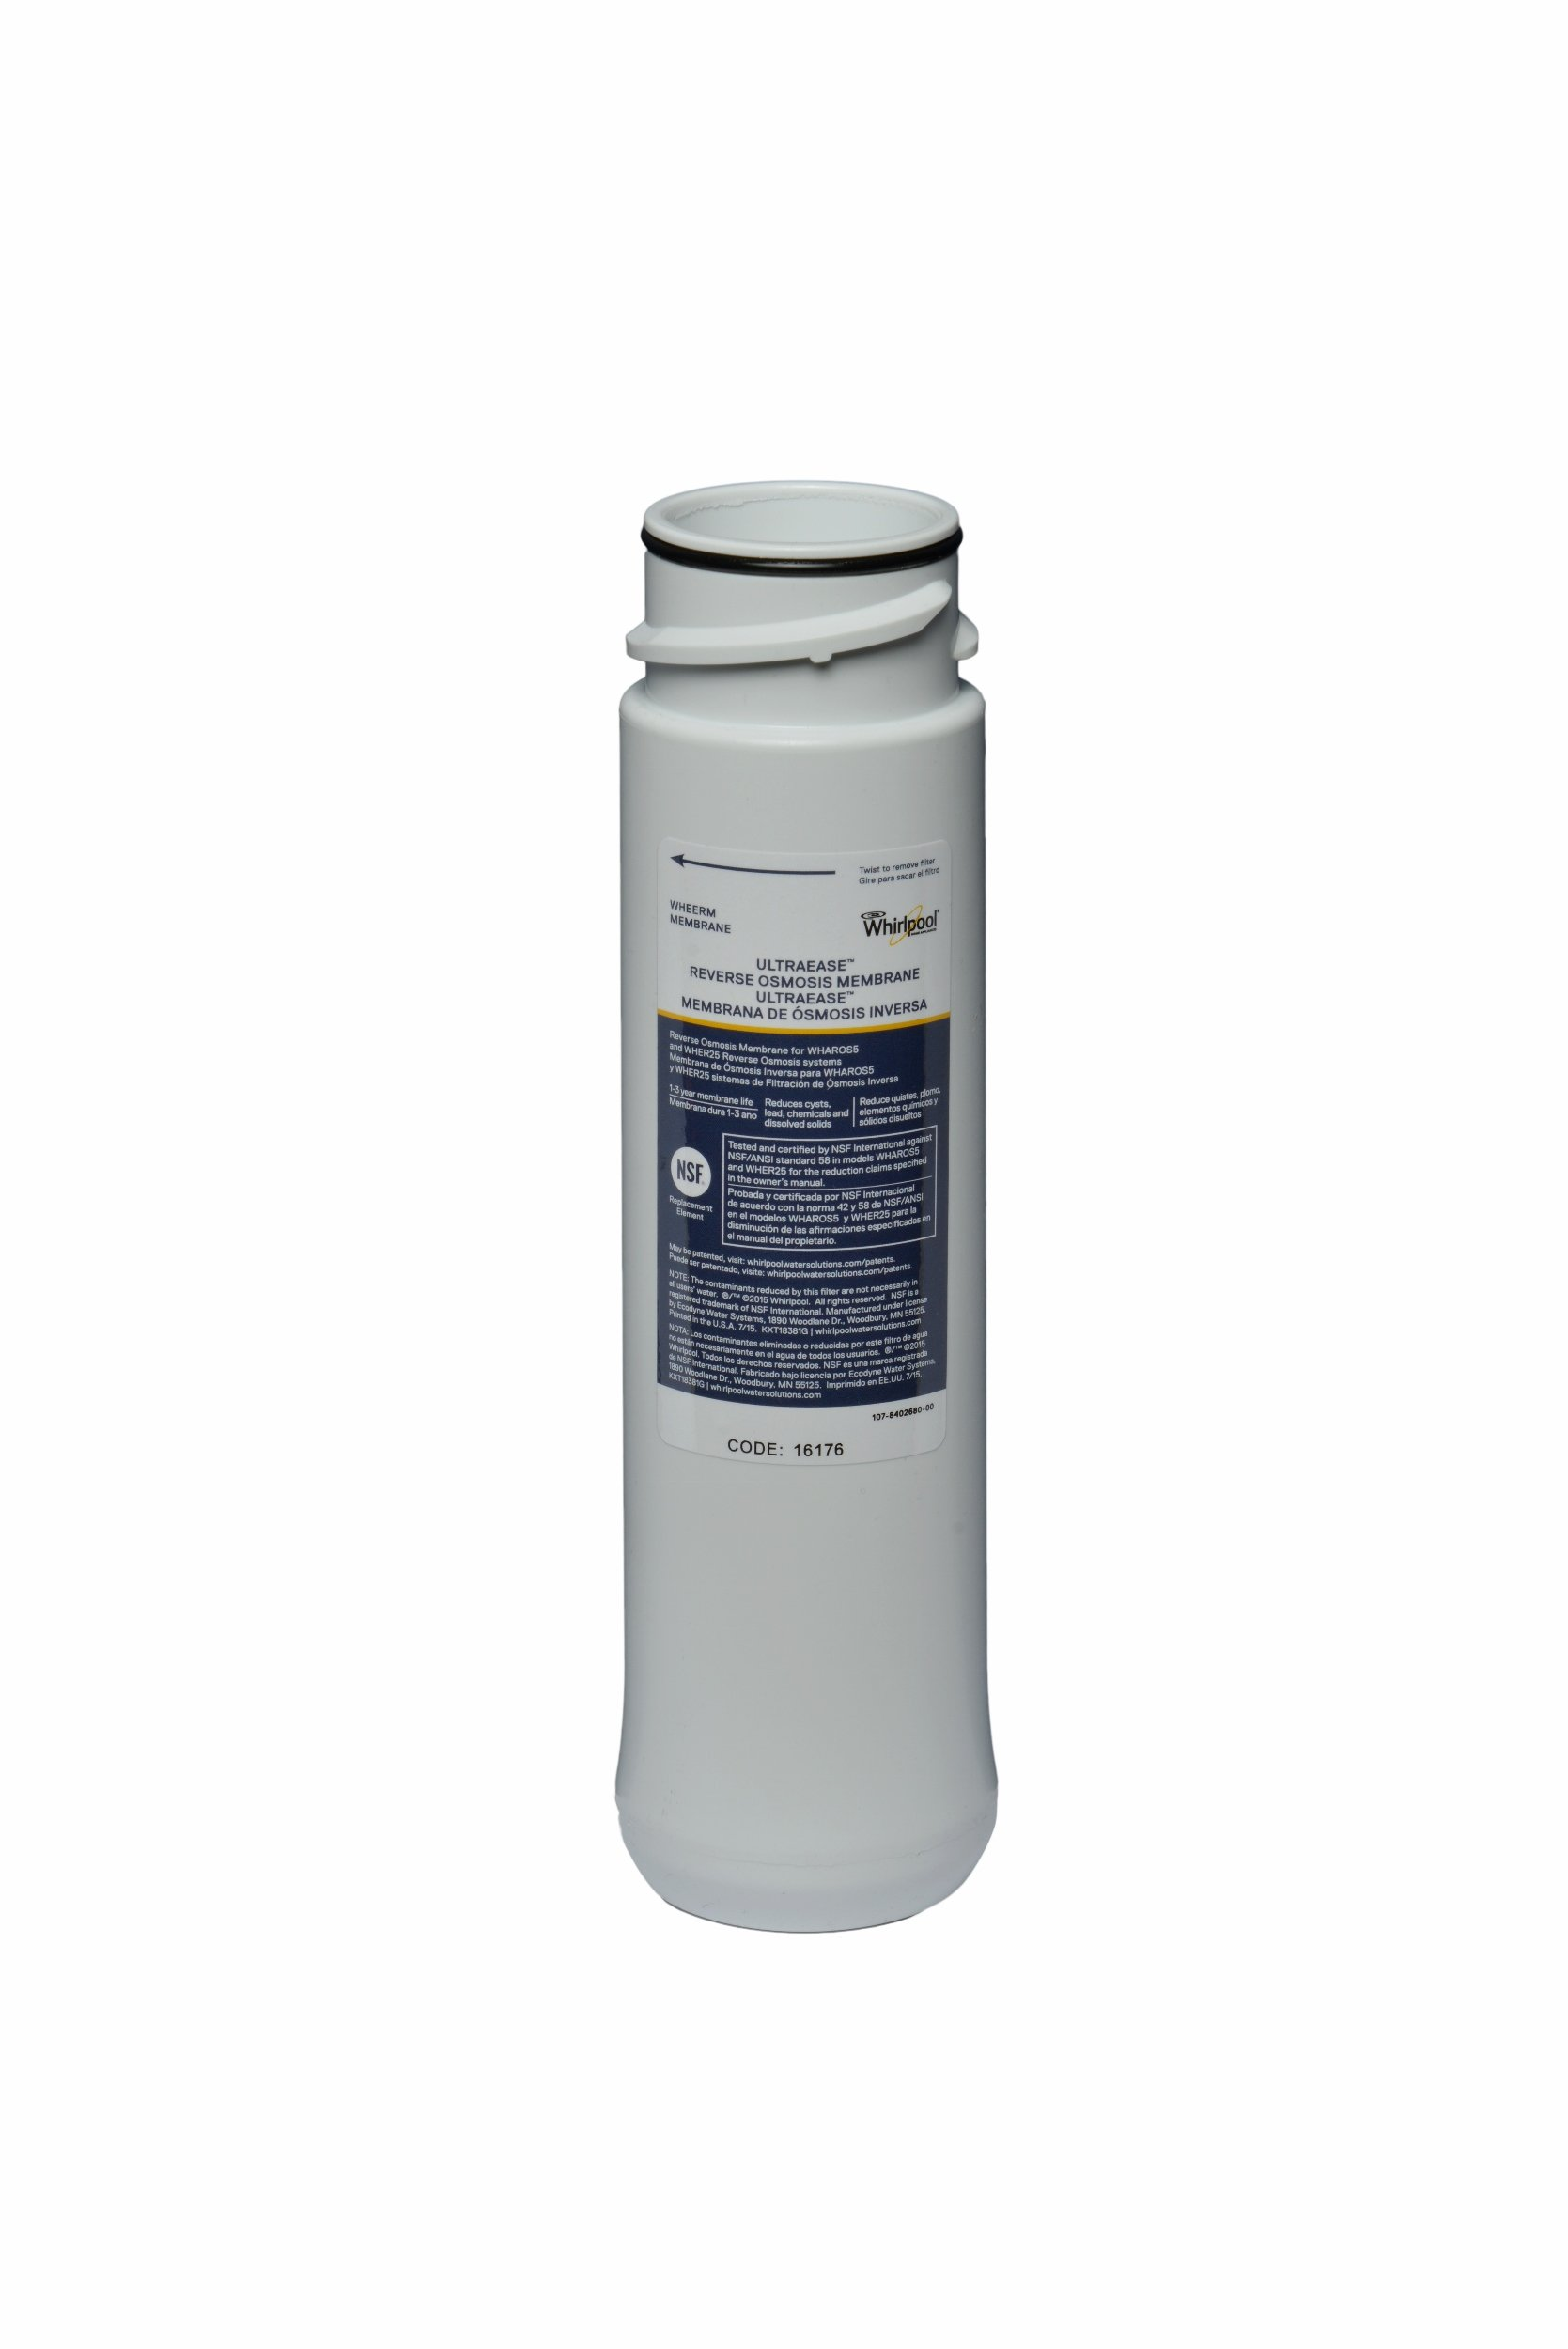 Whirlpool WHEERM Reverse Osmosis Replacement Membrane (Fits Systems WHAROS5, WHAPSRO & WHER25)